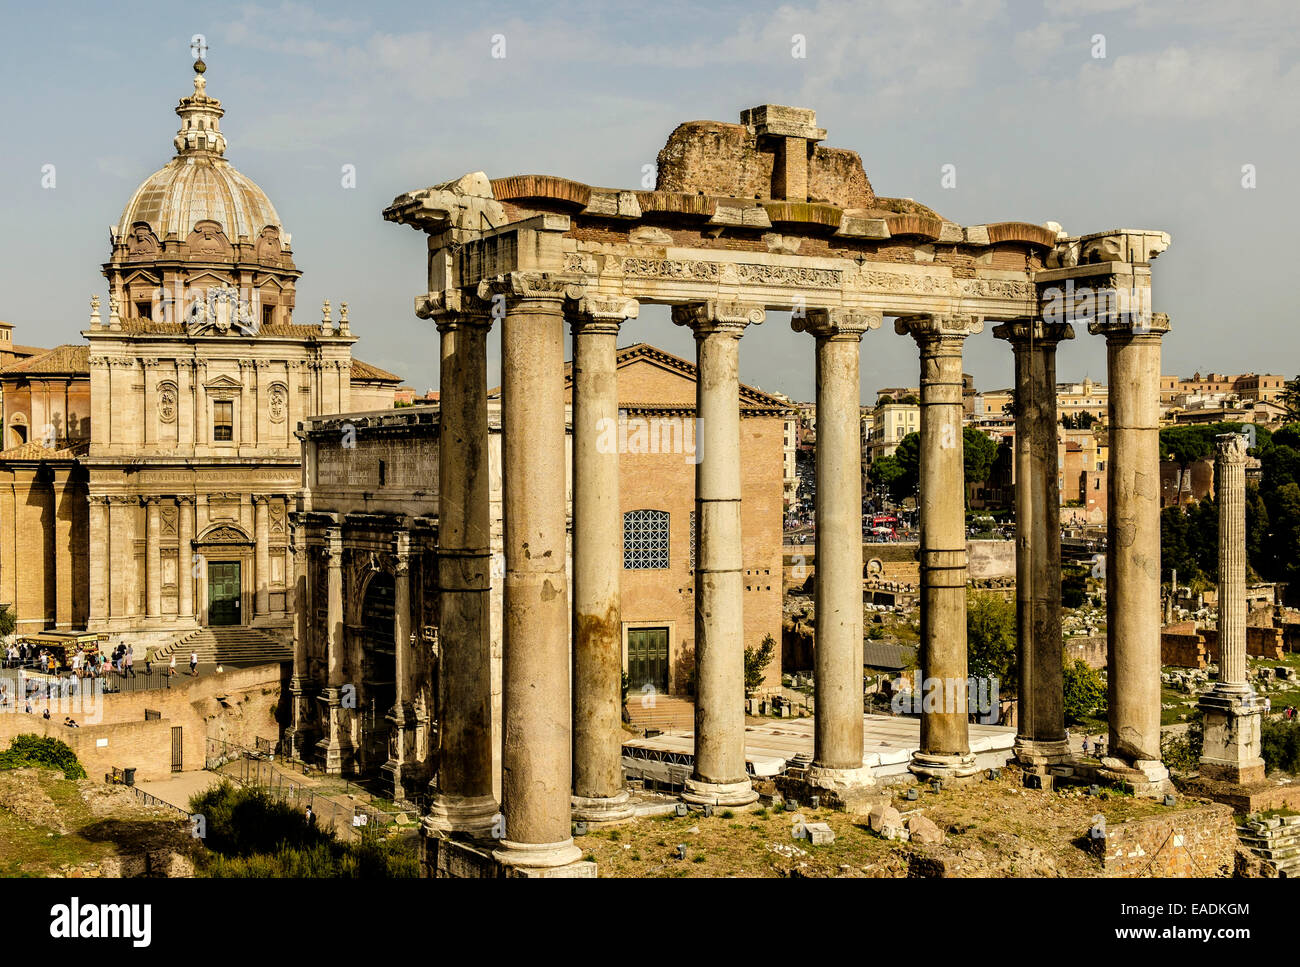 Foro Romano. Classical ruins  mingle with medieval churches in Rome's ancient center. - Stock Image